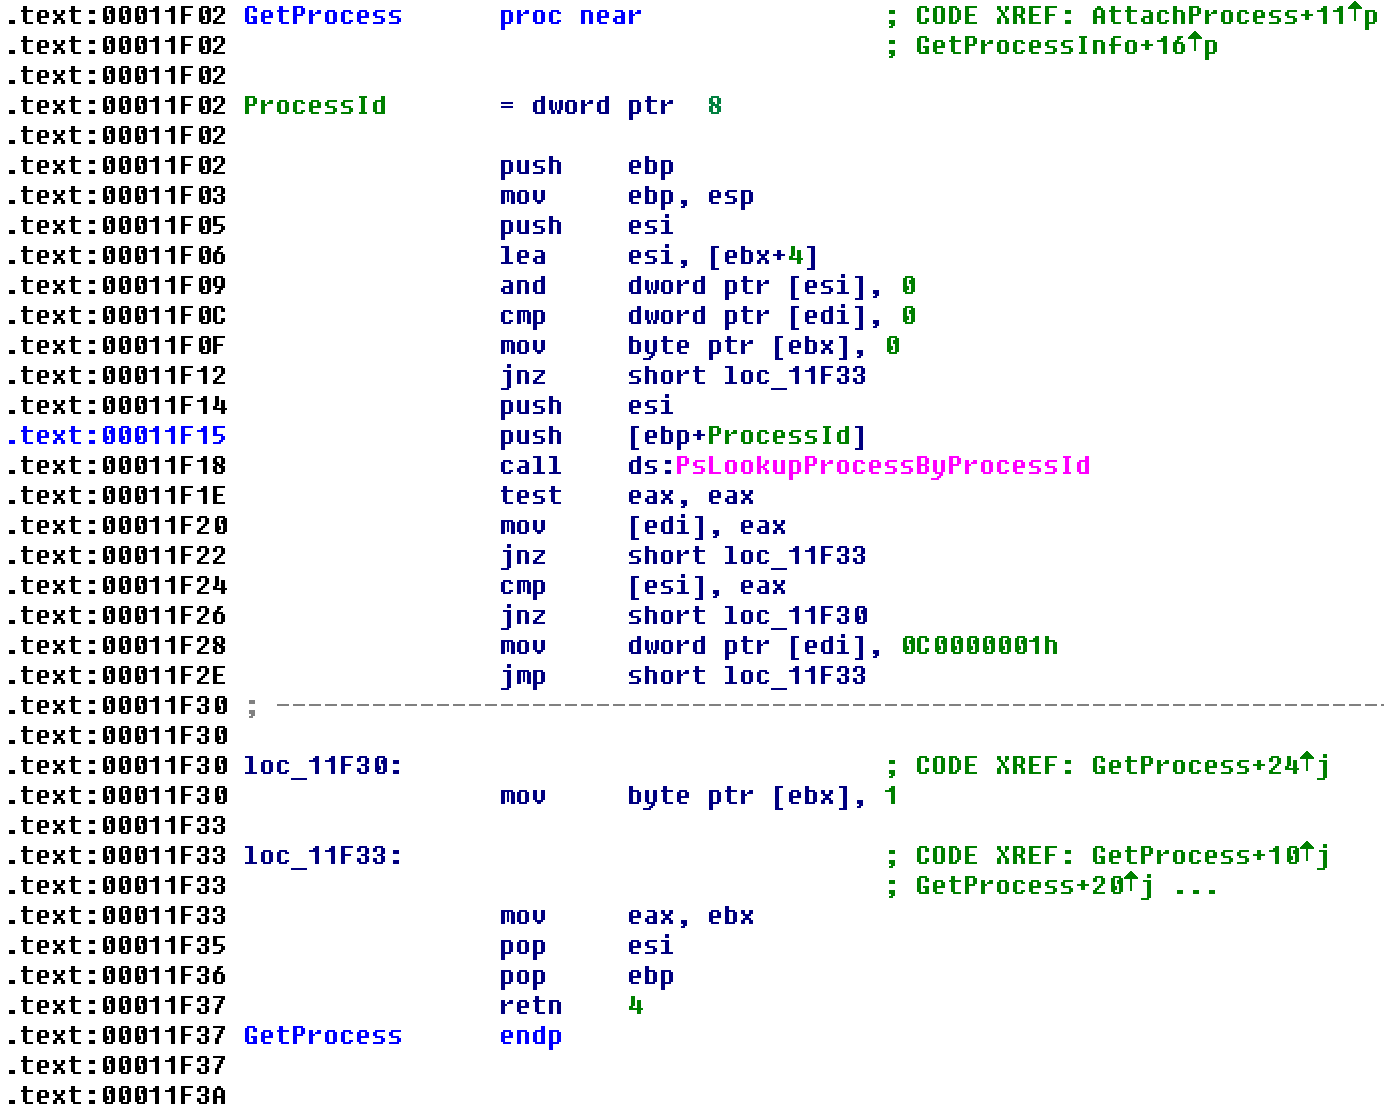 Process injection in kernel mode - Mastering Malware Analysis